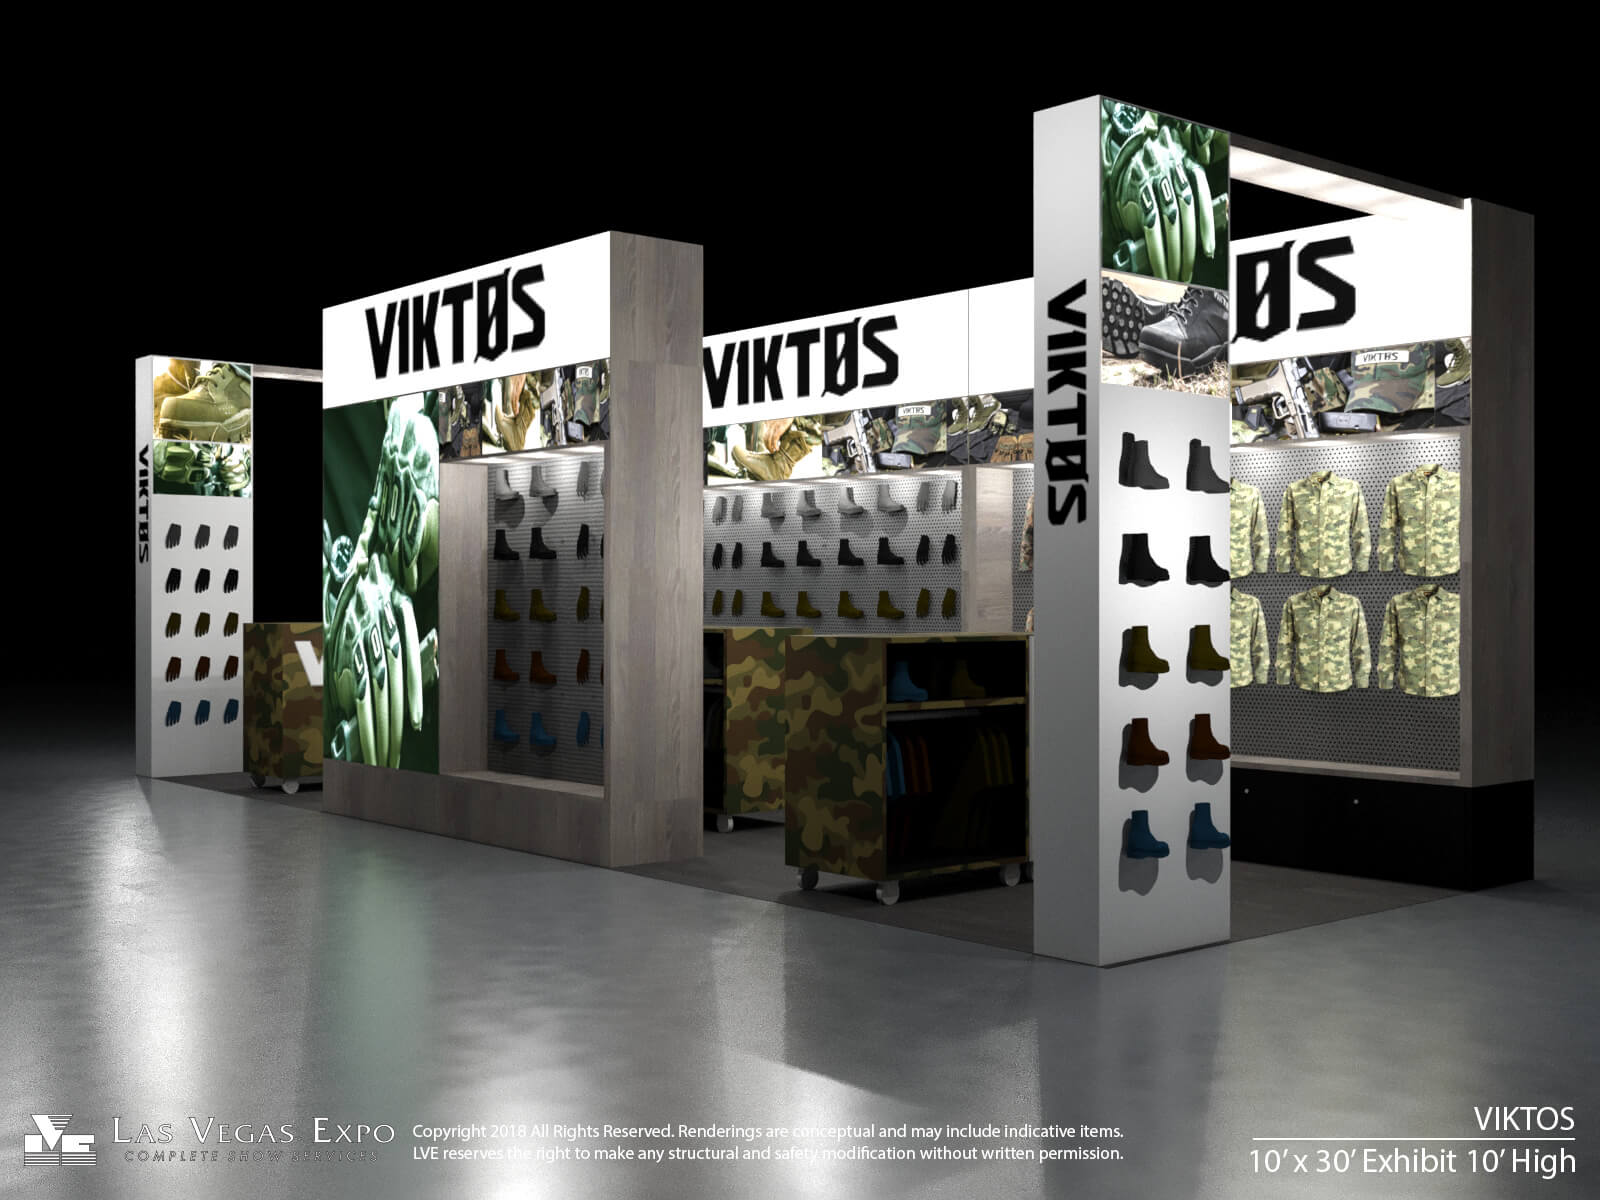 vitos-booth-design_usa-cbd-expo-2019.jpg